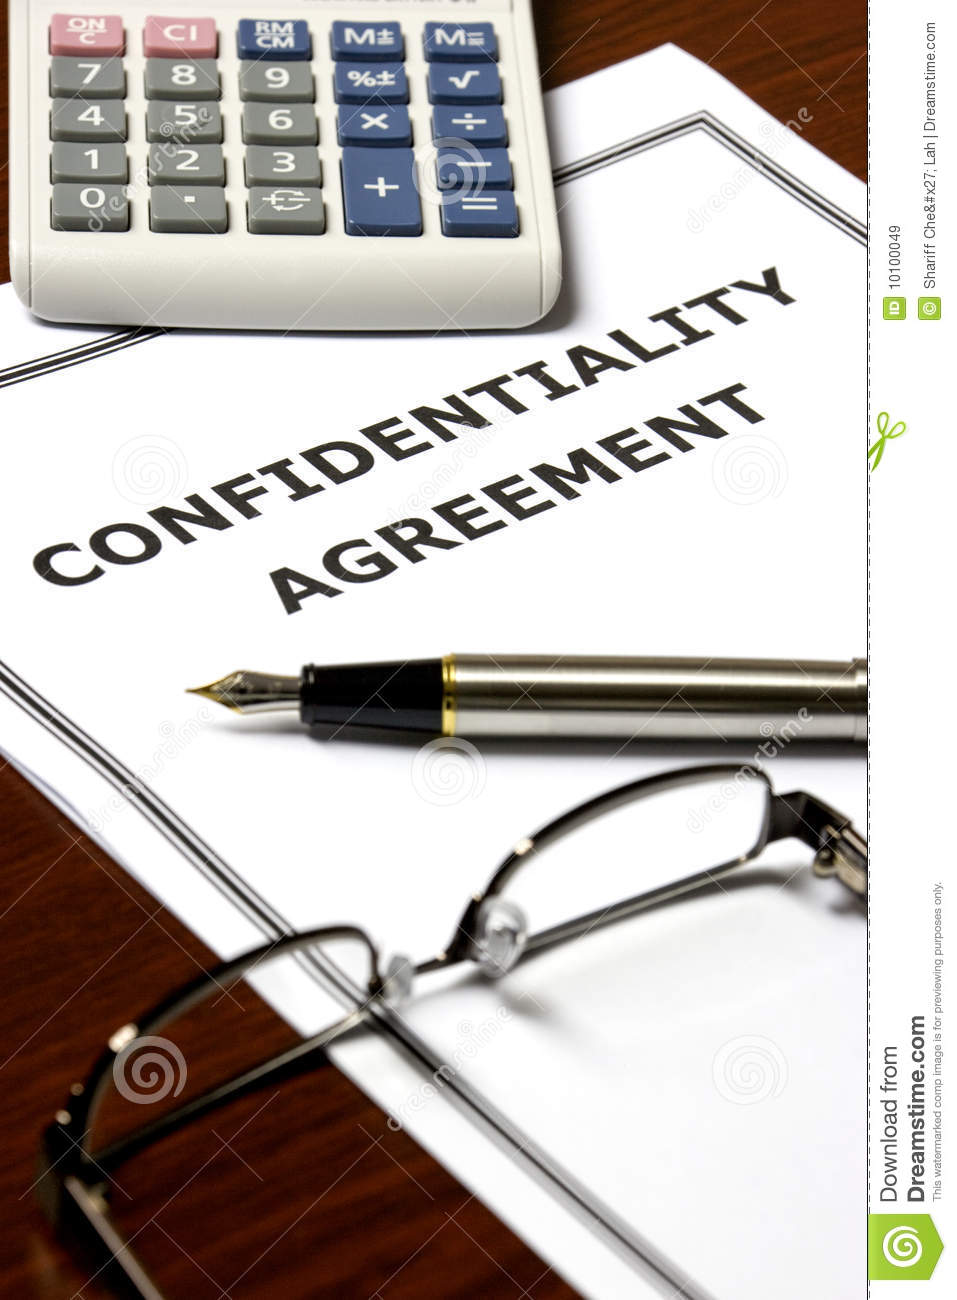 Confidentiality Agreement Stock Image Image Of Contractual 10100049